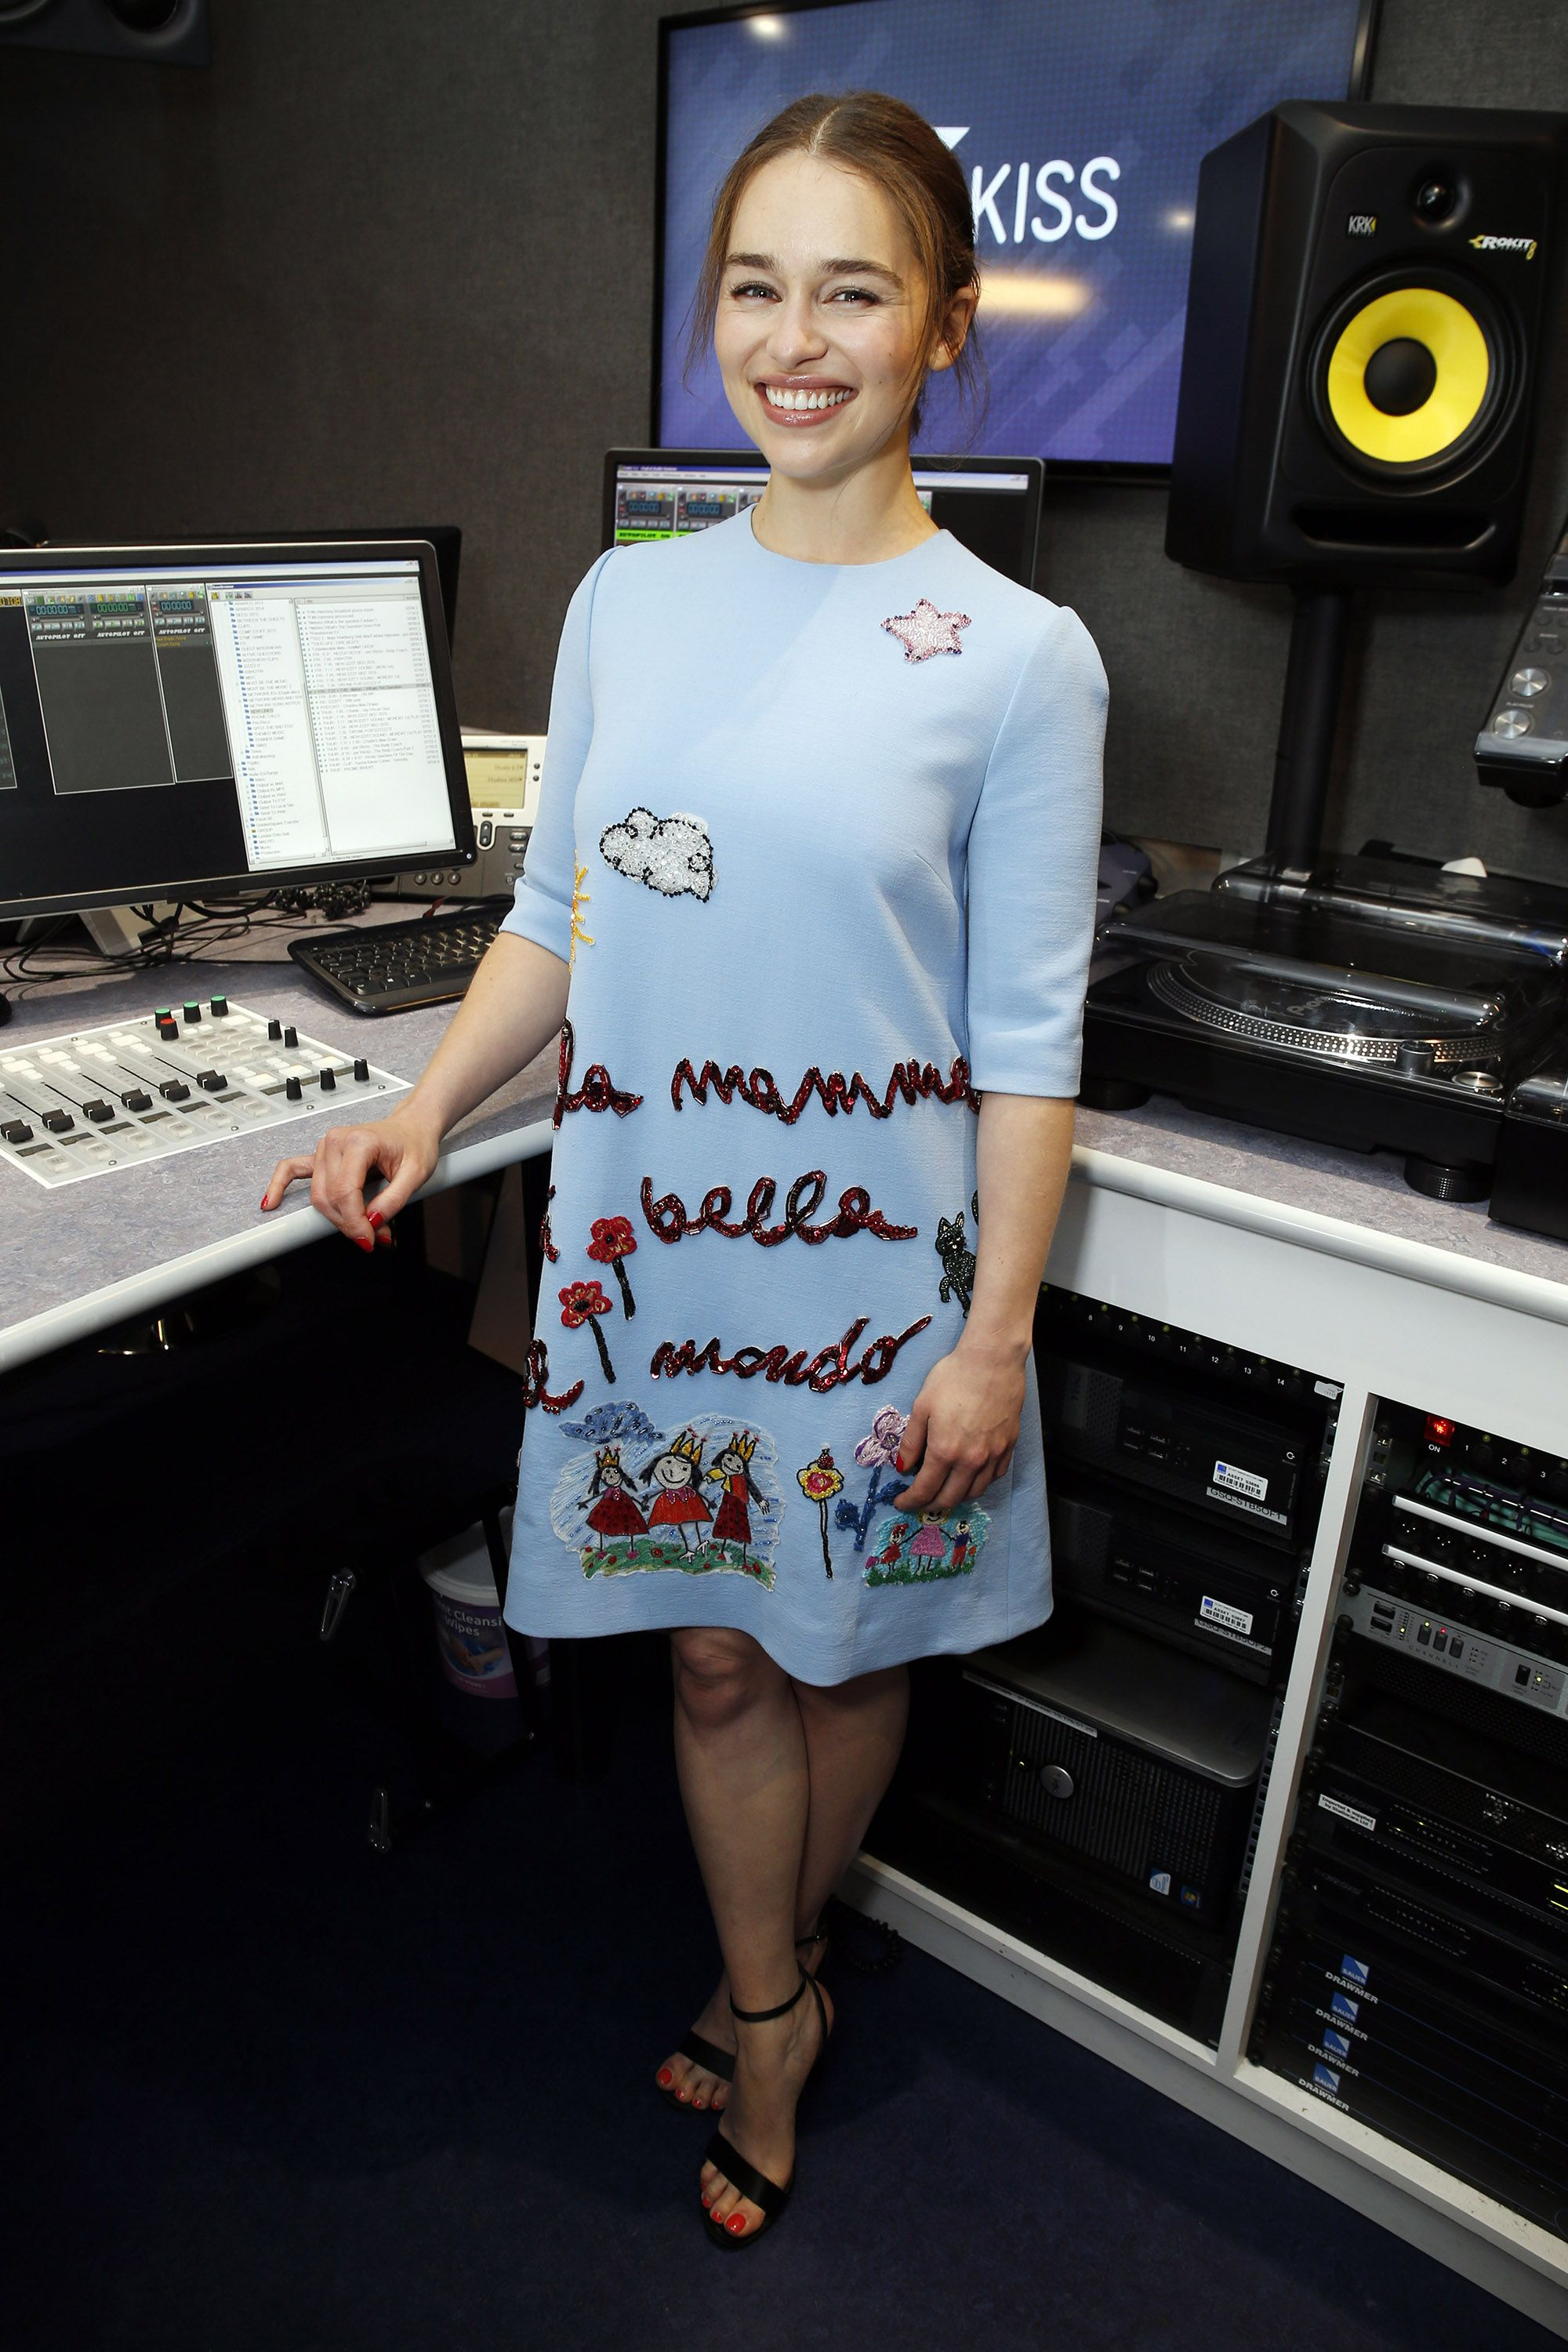 LONDON, UNITED KINGDOM - JUNE 18:  Emilia Clarke poses for pictures during a visit to Kiss FM on June 18, 2015 in London, England. (Photo by Alex B. Huckle/Getty Images)